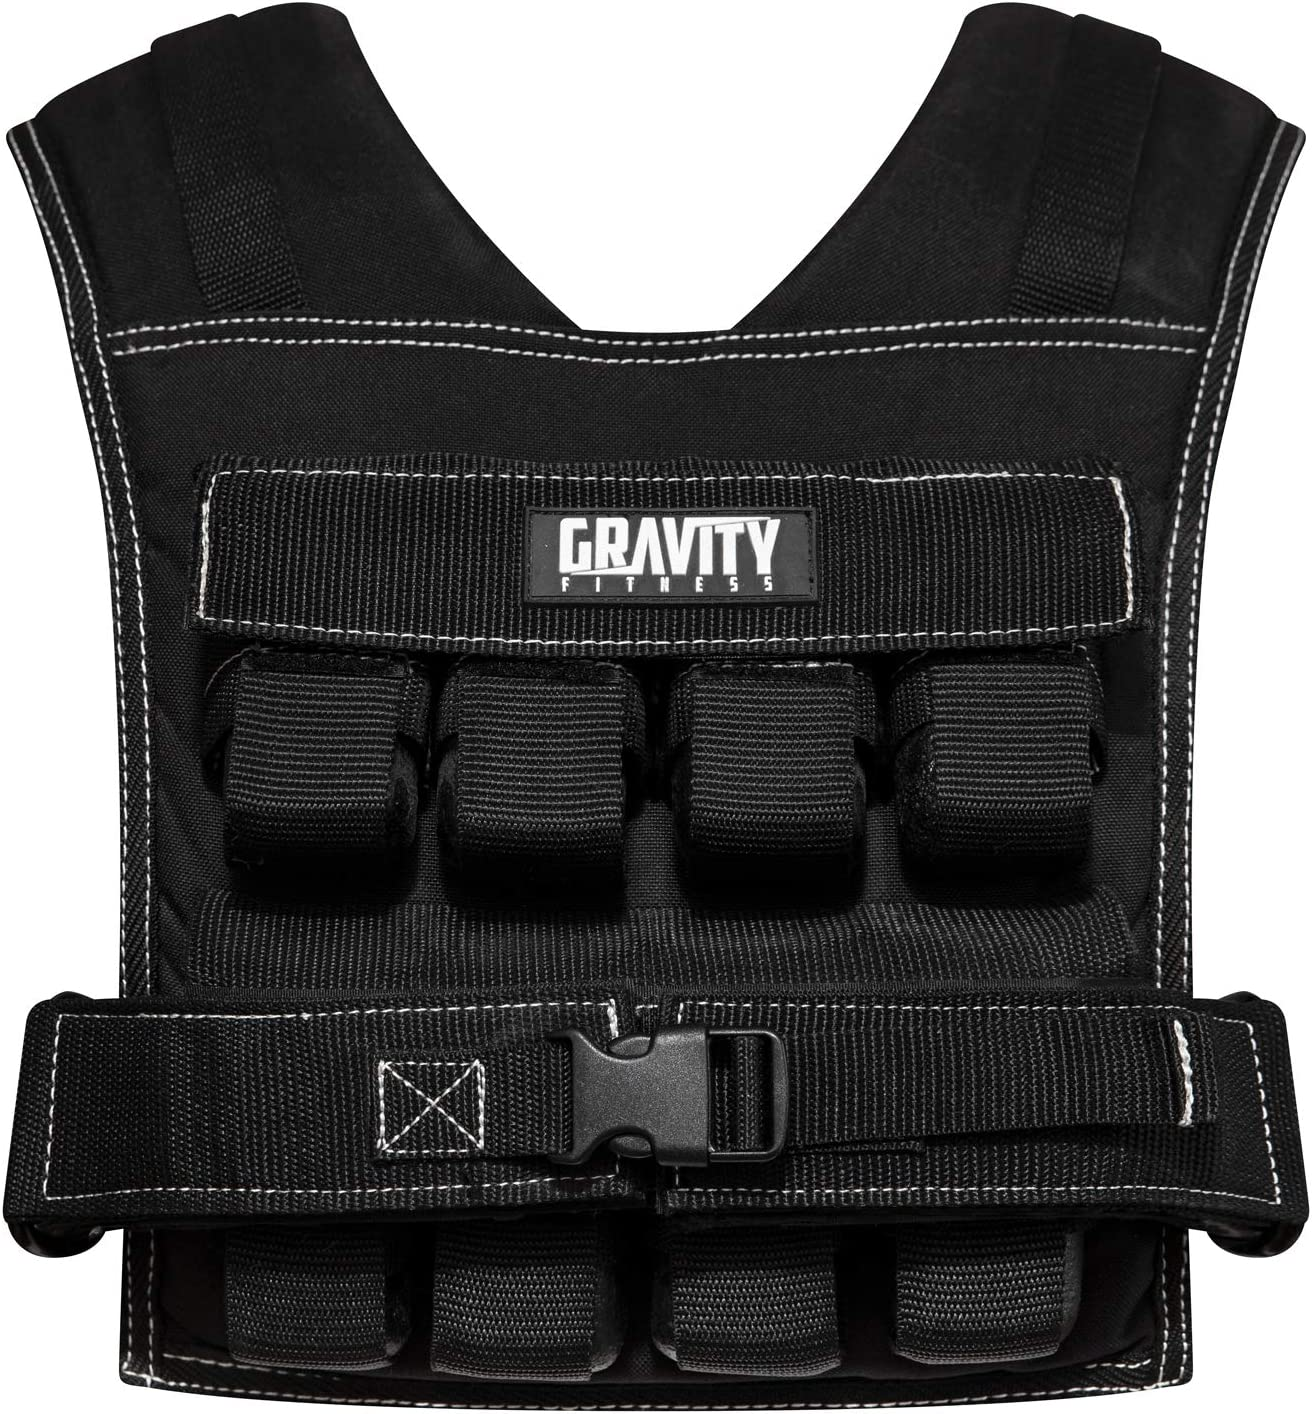 Capital Sports Battlevest 2.0 Weight Vest Weight Plates High Wearing Comfort and Optimal Weight Distribution Thanks to Thick Padding on the Shoulders